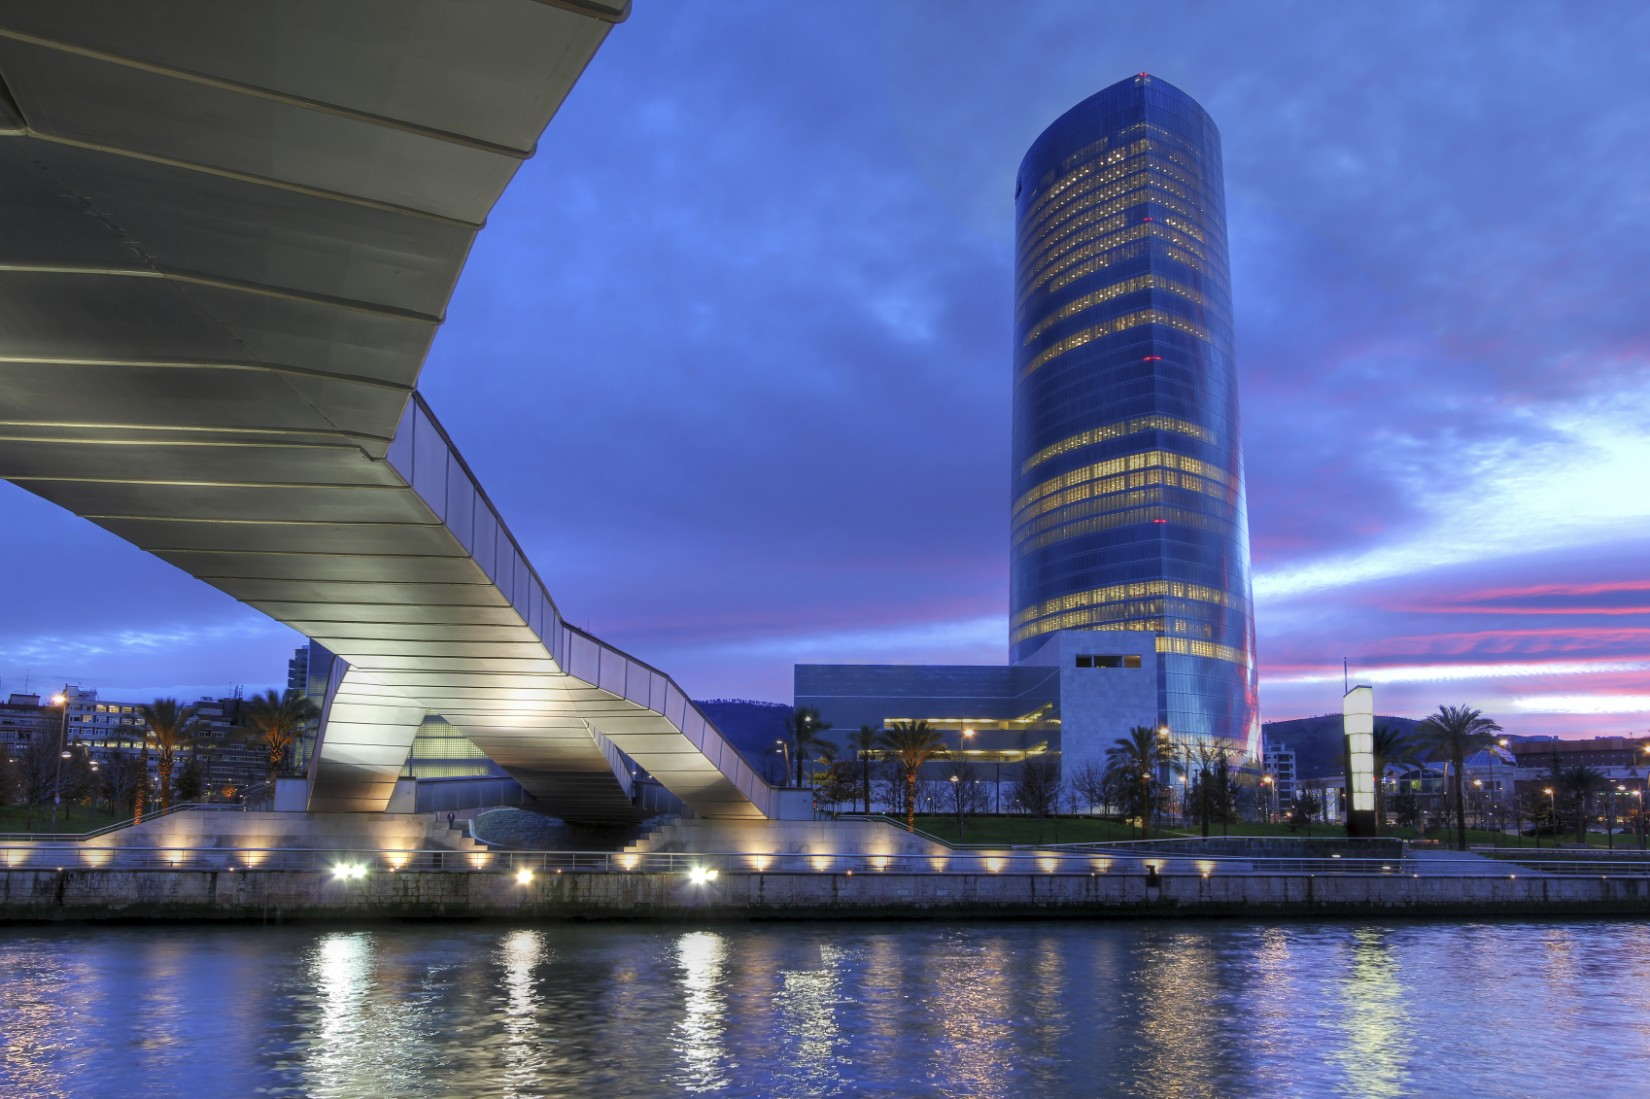 Iberdrola Tower, Bilbao, Spain